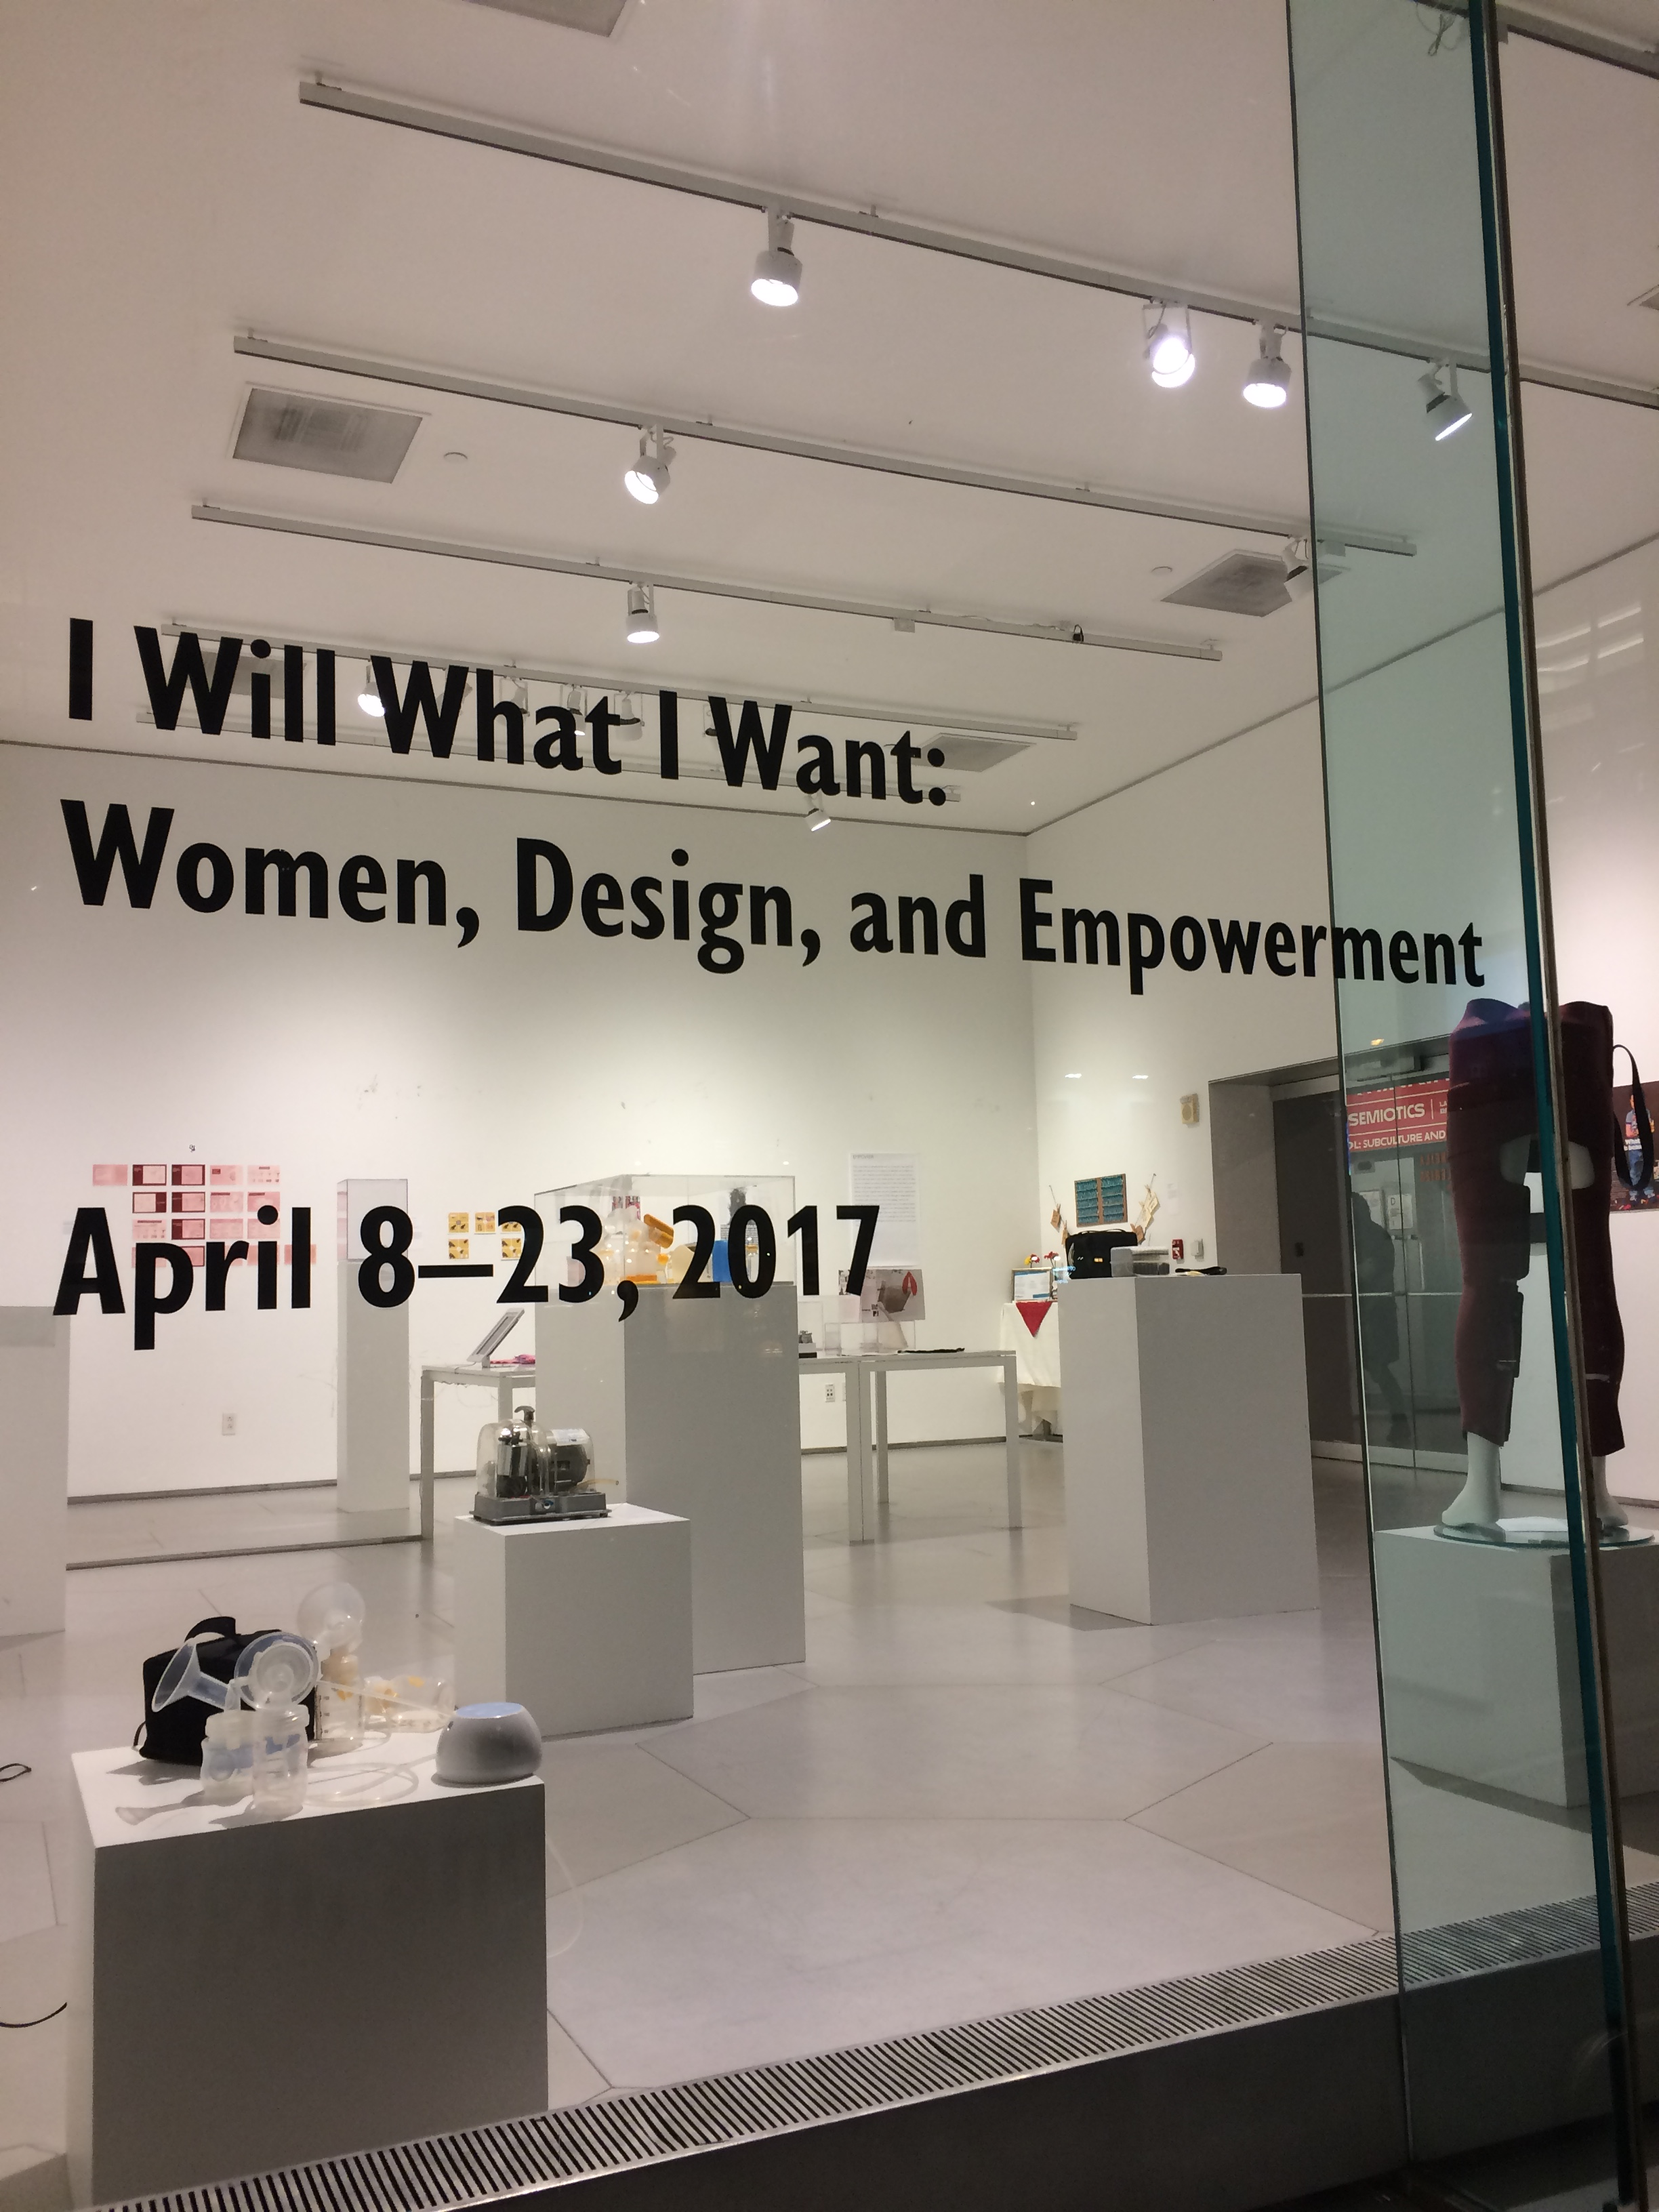 I Will What I Want: Women, Design, and Empowerment // April 8-23